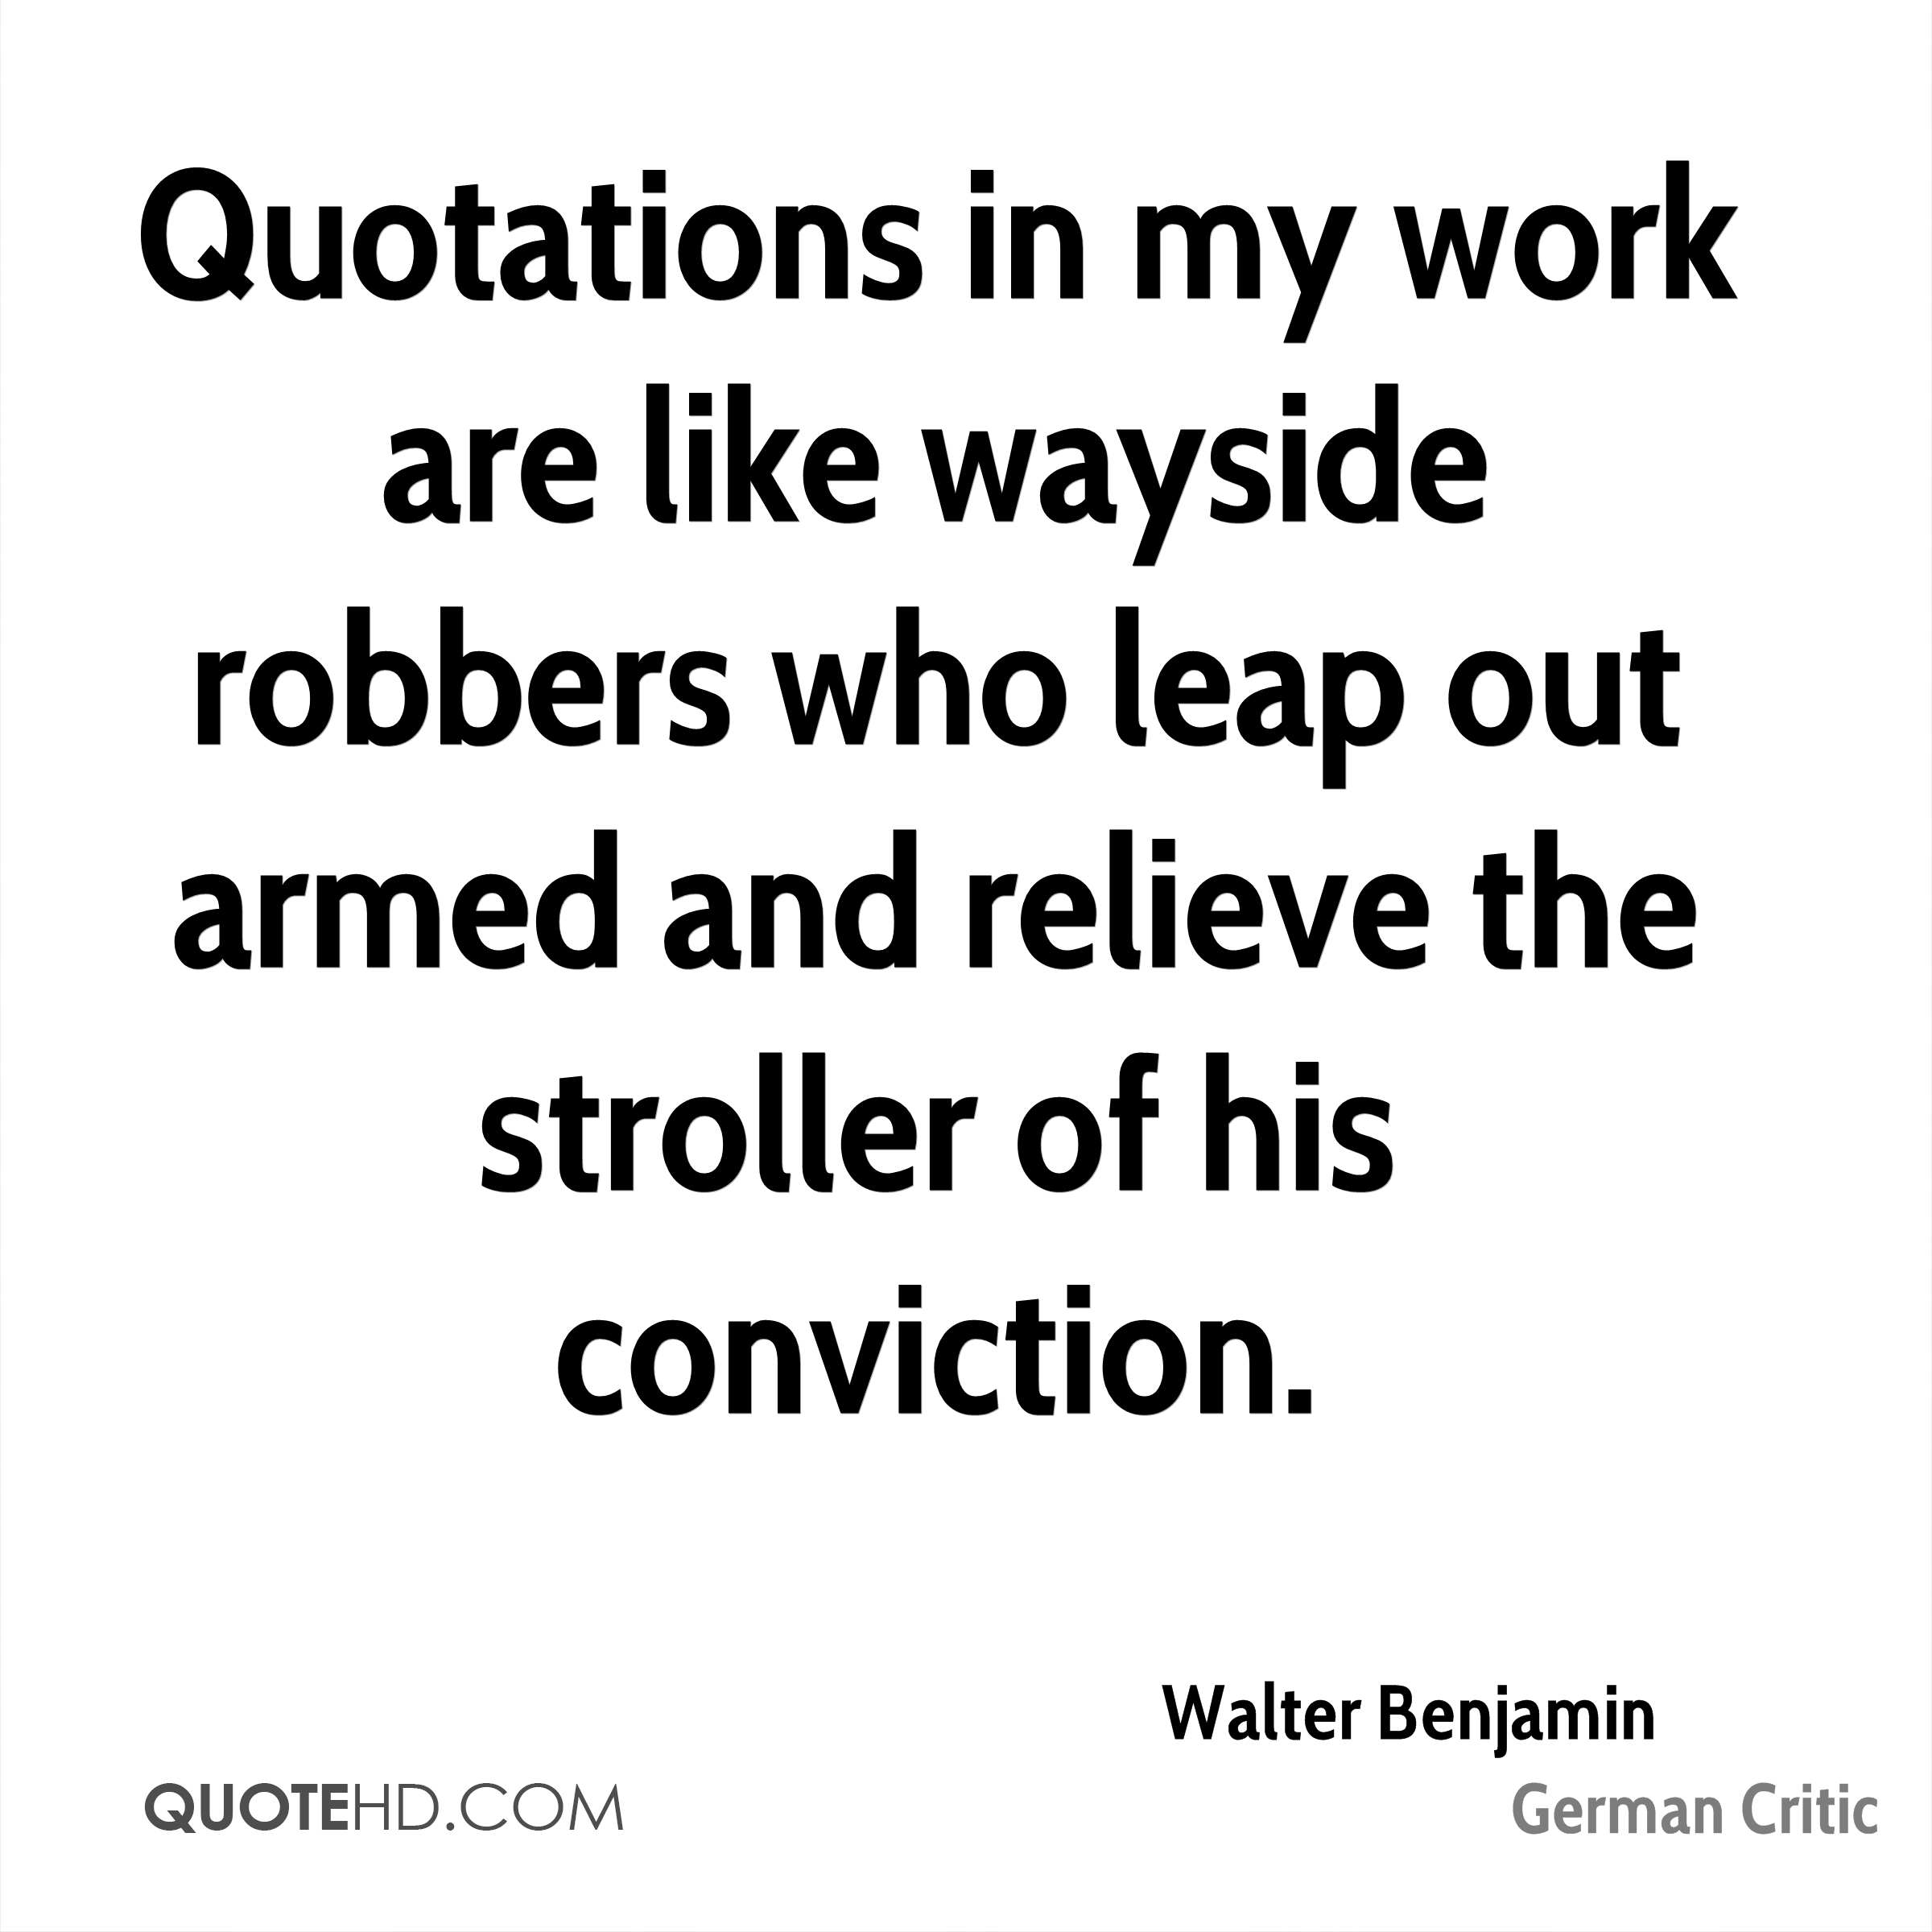 Quotations in my work are like wayside robbers who leap out armed and relieve the stroller of his conviction.